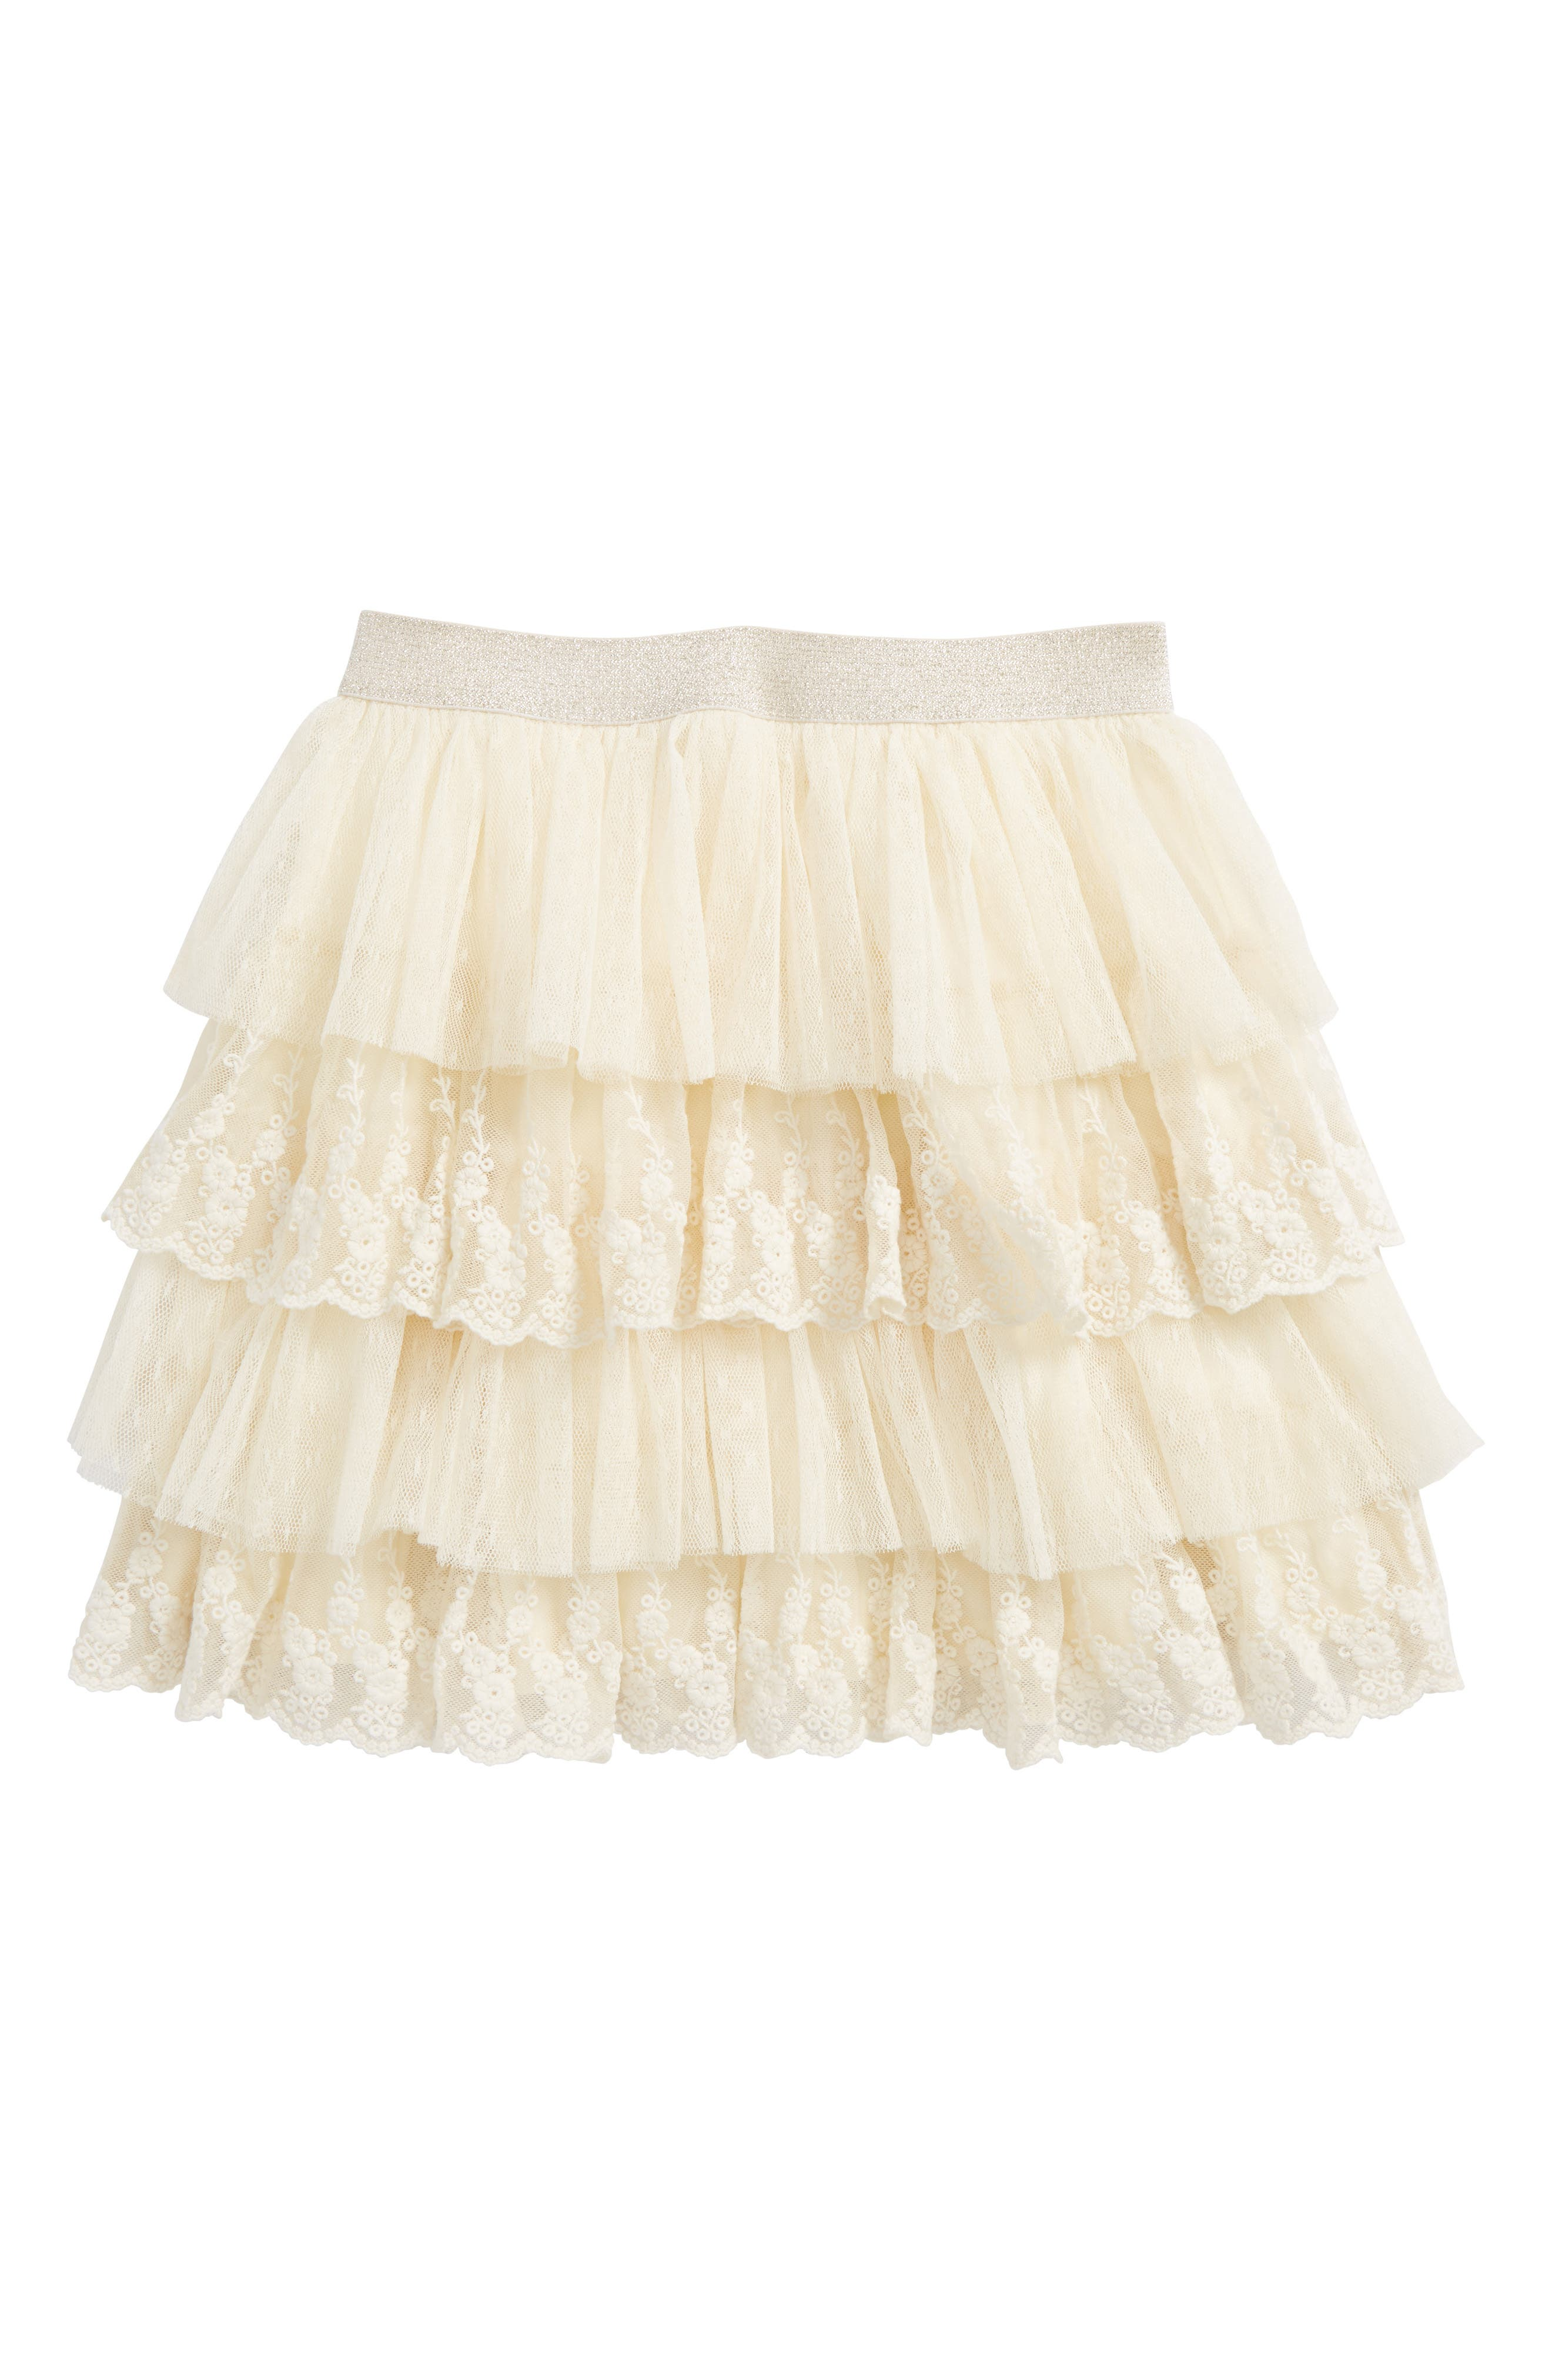 Lace Trim Tutu,                             Main thumbnail 1, color,                             Ivory